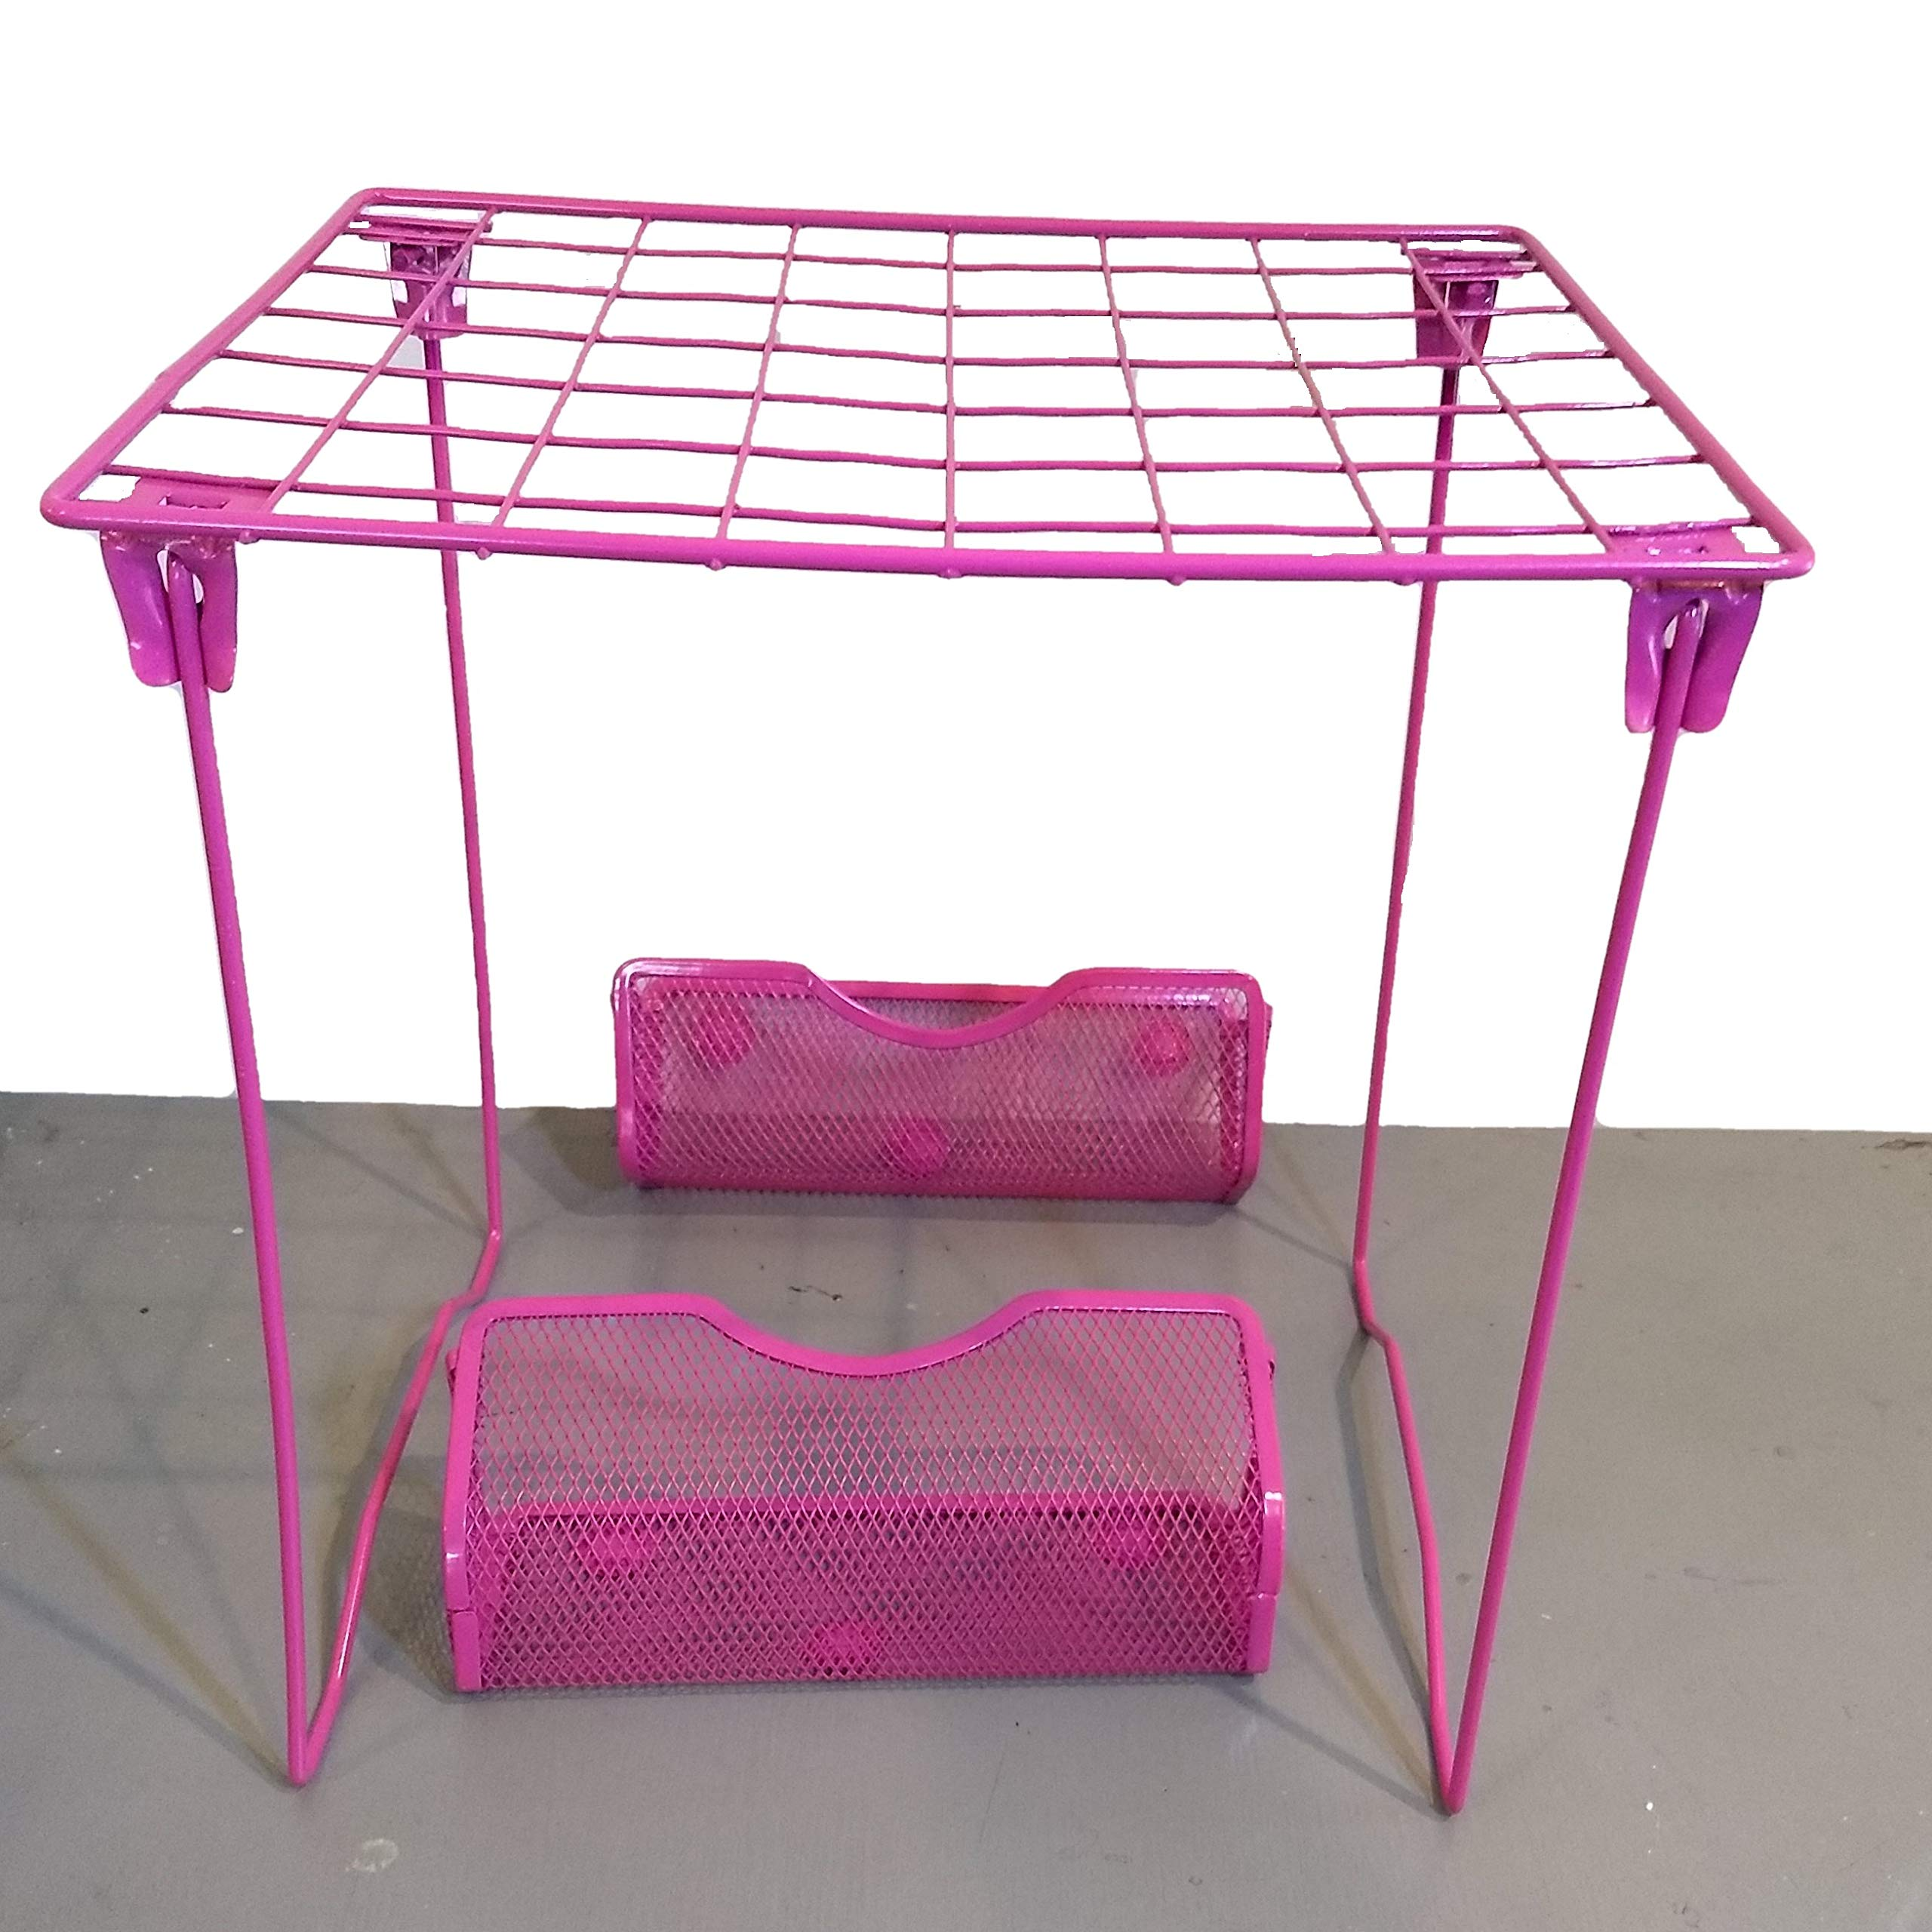 Locker Room Wire Locker Shelf 11.8'' X 10.04'' X 12.4'' and 2 Magnetic Locker Baskets Caddy Pencil Holders with 3 Cute erasers Bundle (Pink) by The Locker Room